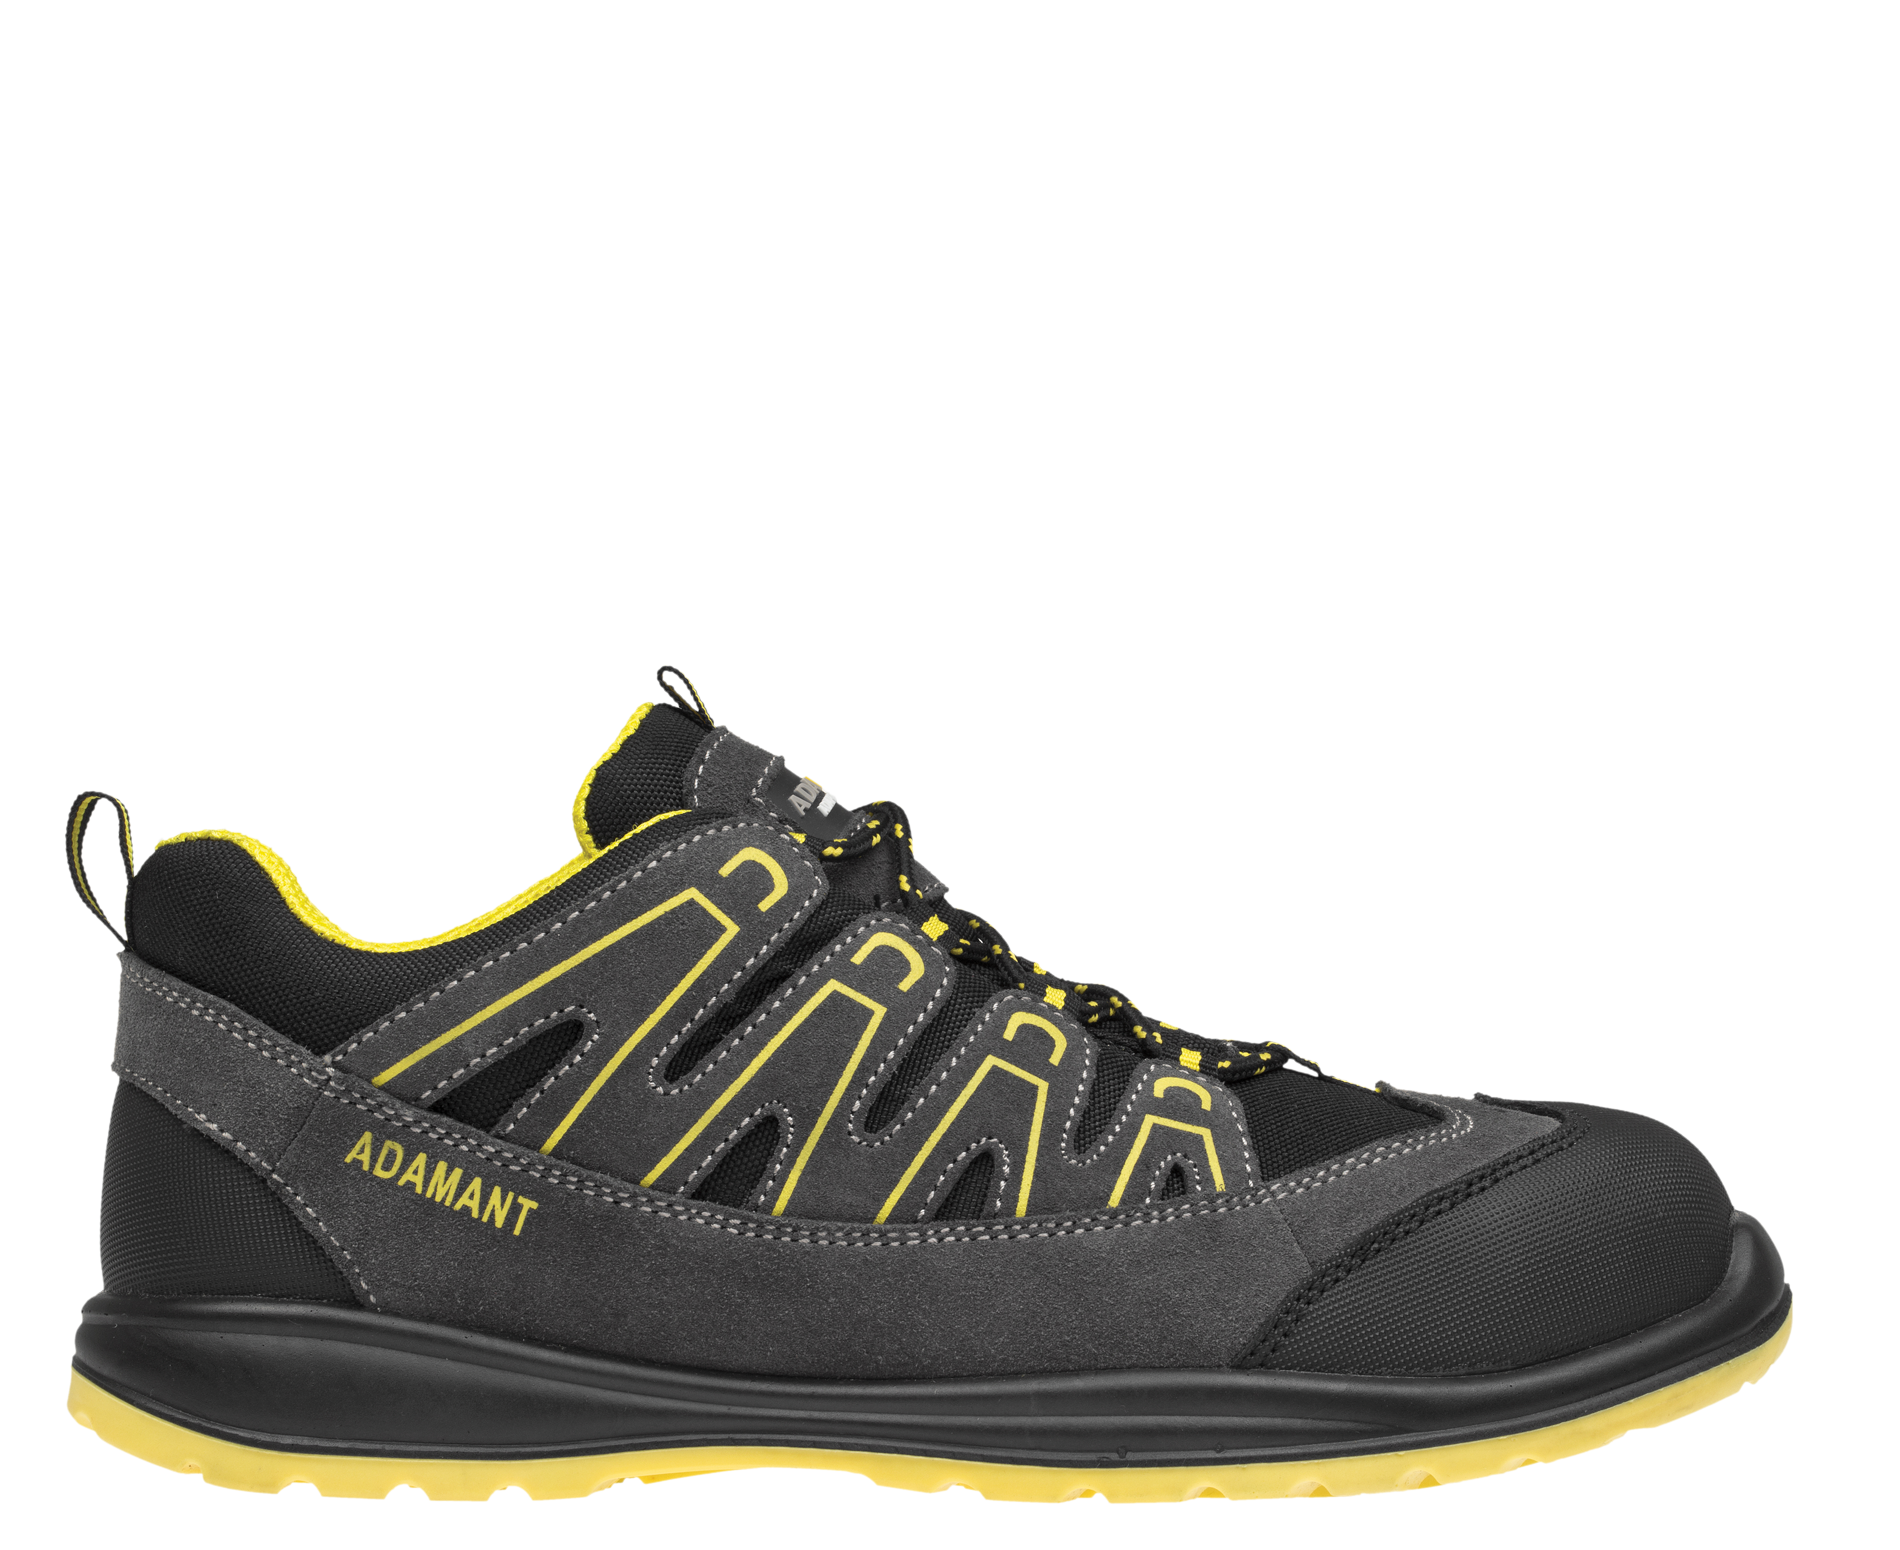 ADAMANT - ADM ALEGRO S1P ESD YELLOW LOW